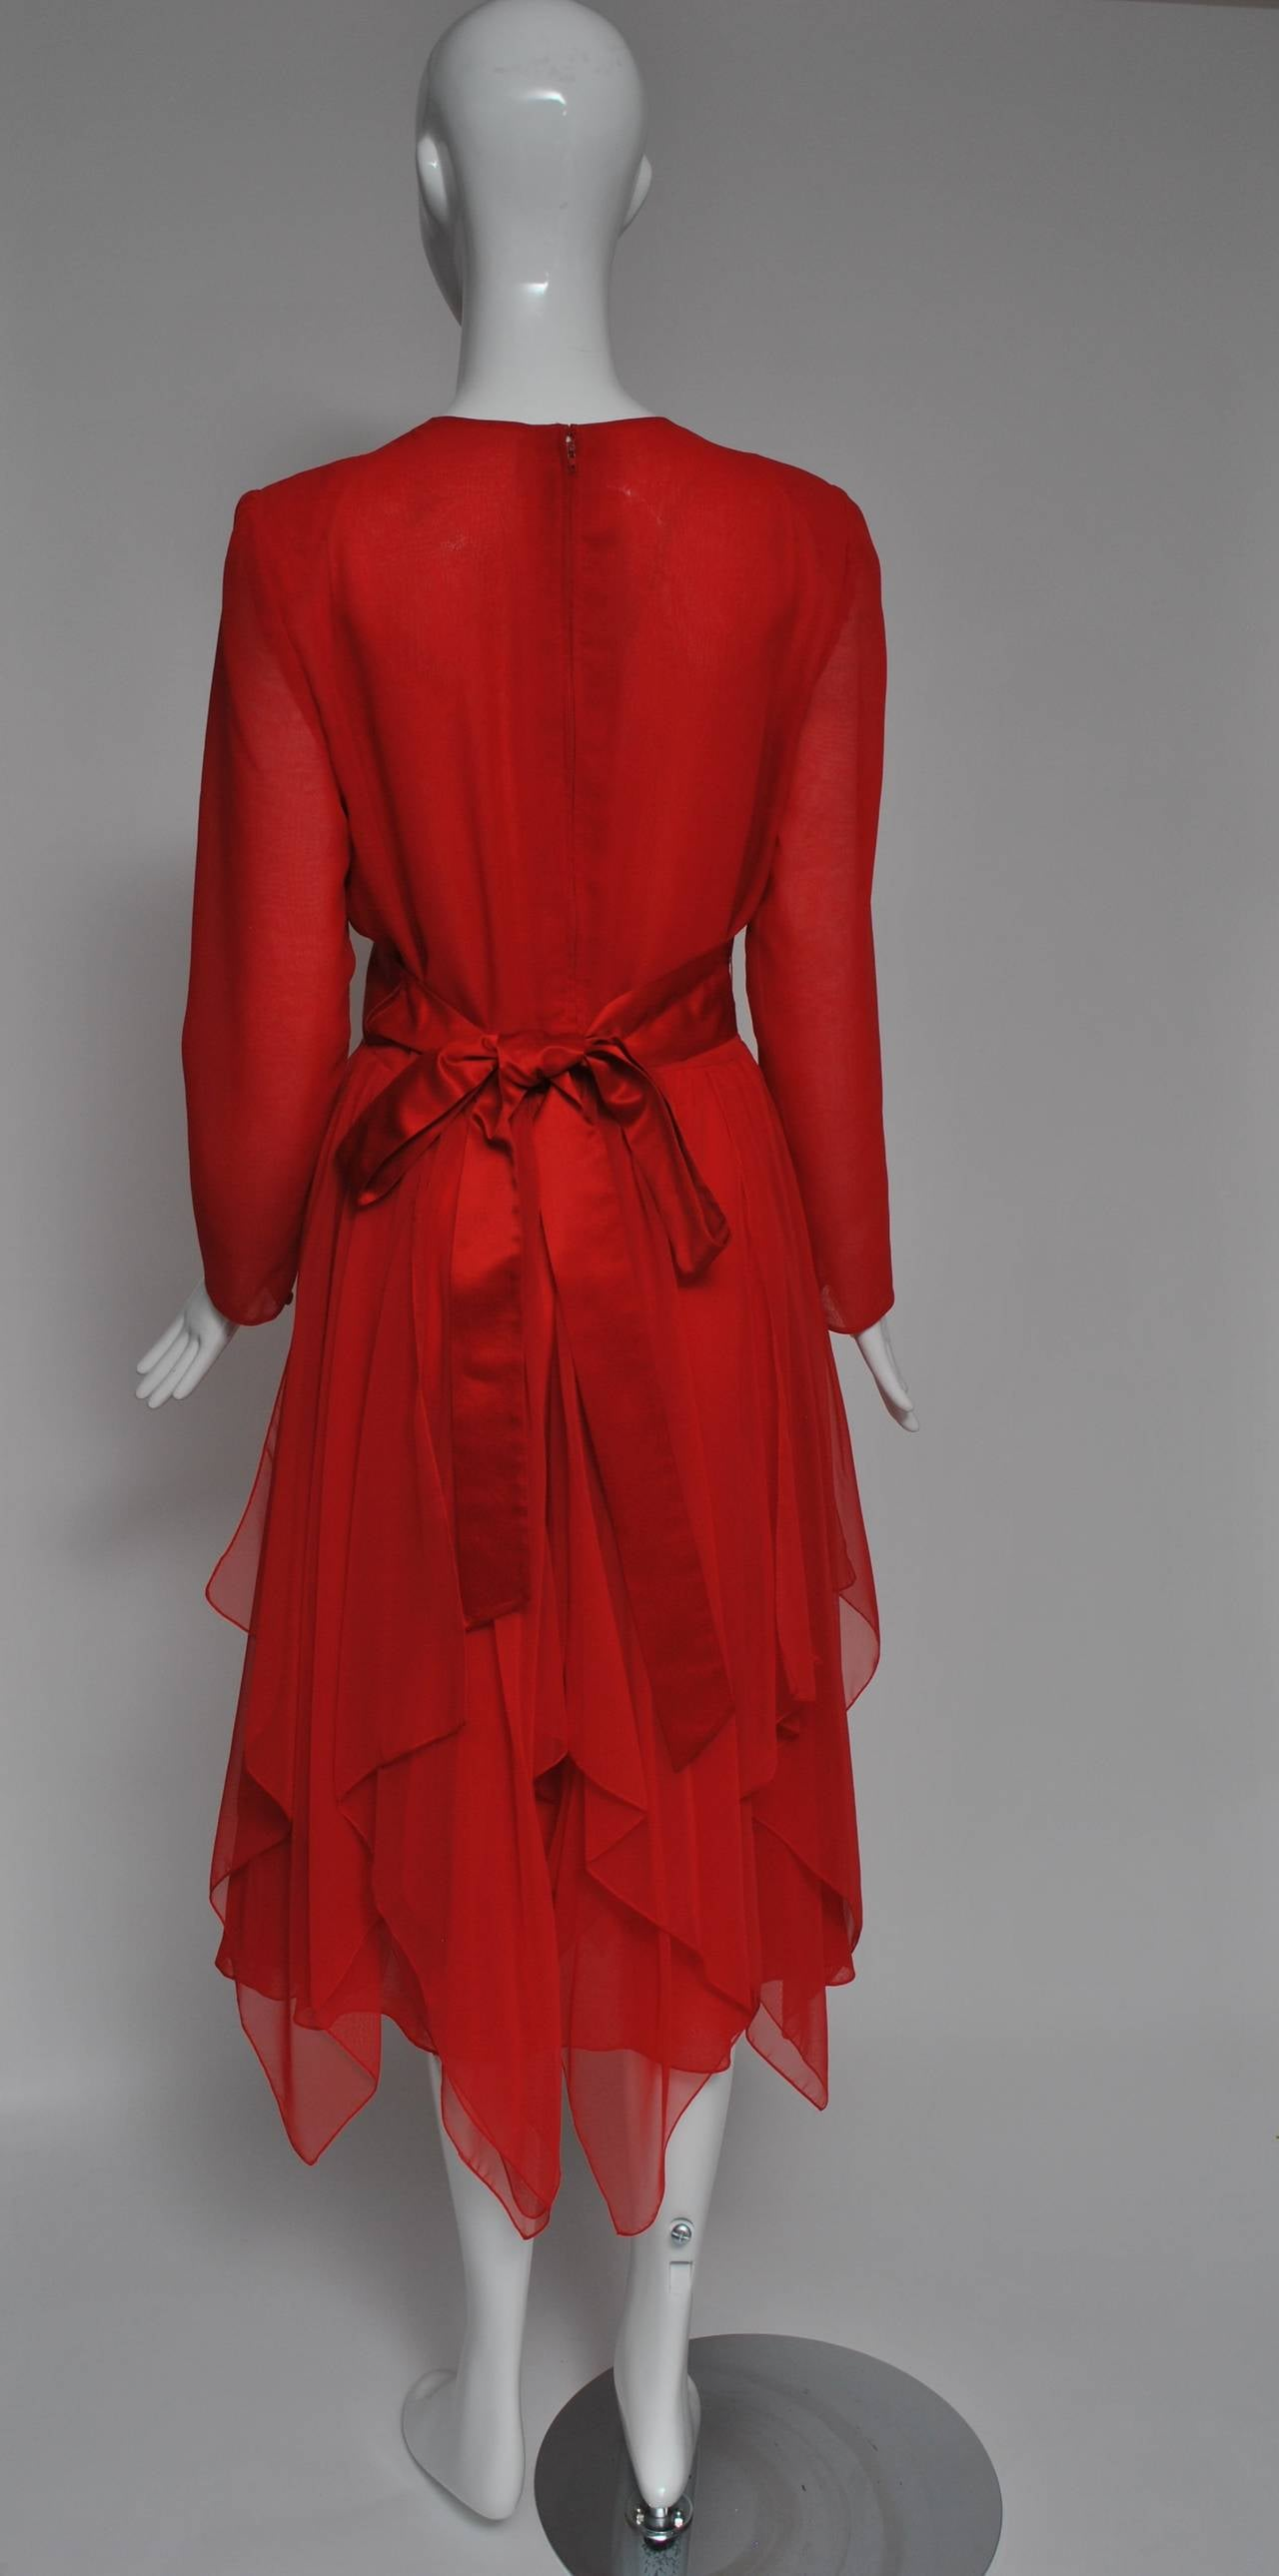 Estevez Red Chiffon Handkerchief Dress In Excellent Condition For Sale In Alford, MA